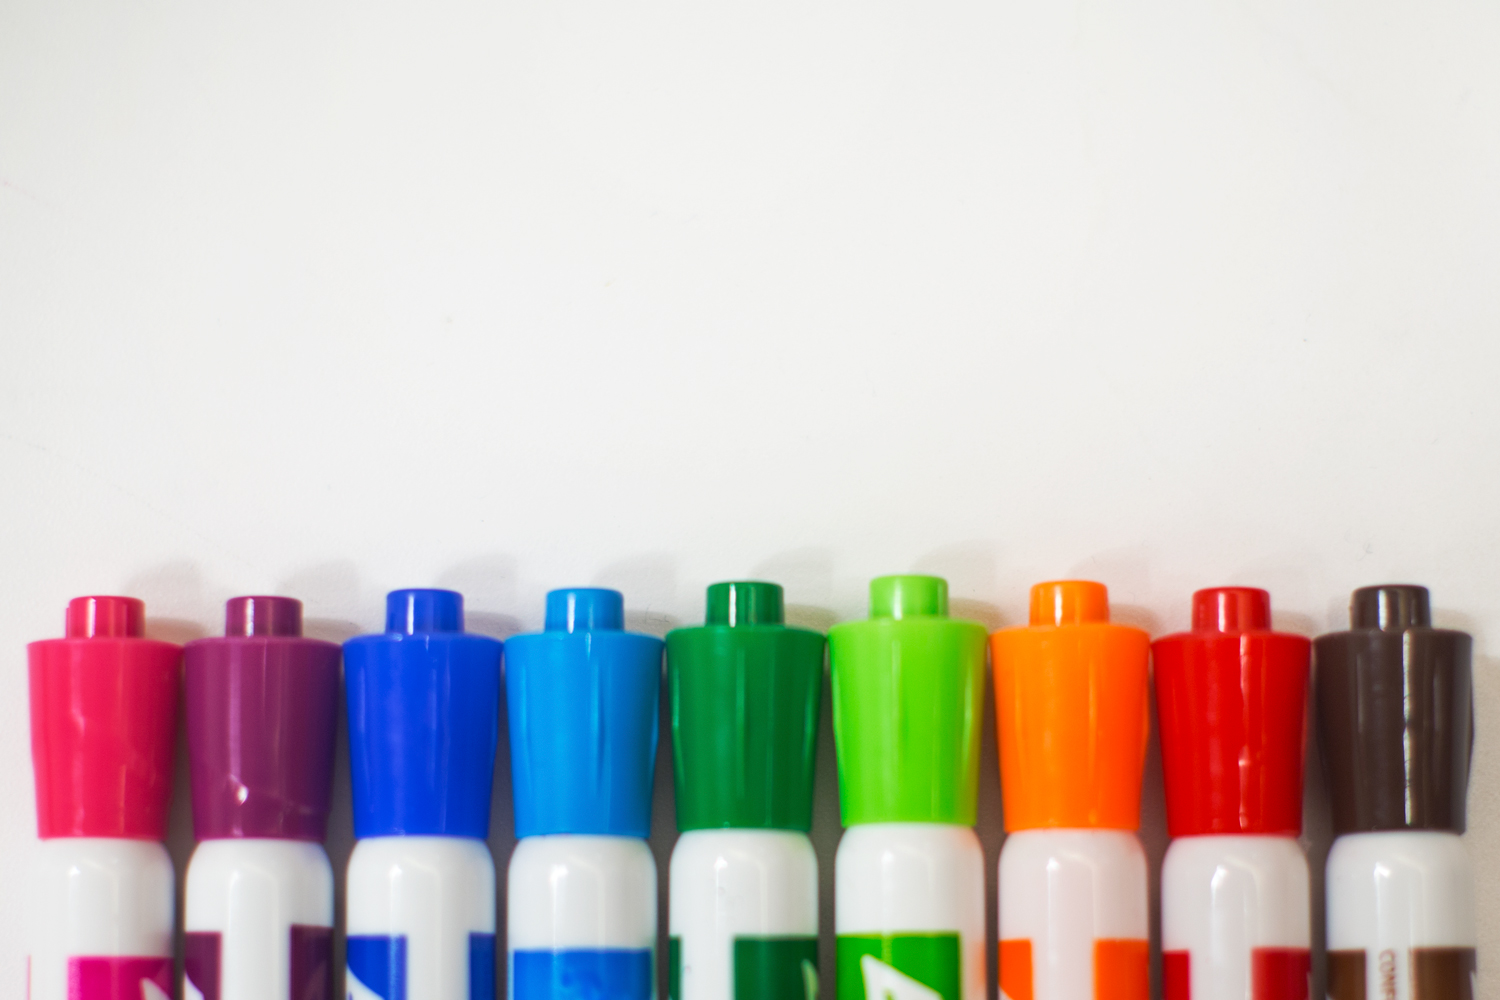 HubSpot_colorful-markers-2-ValidLists_BP